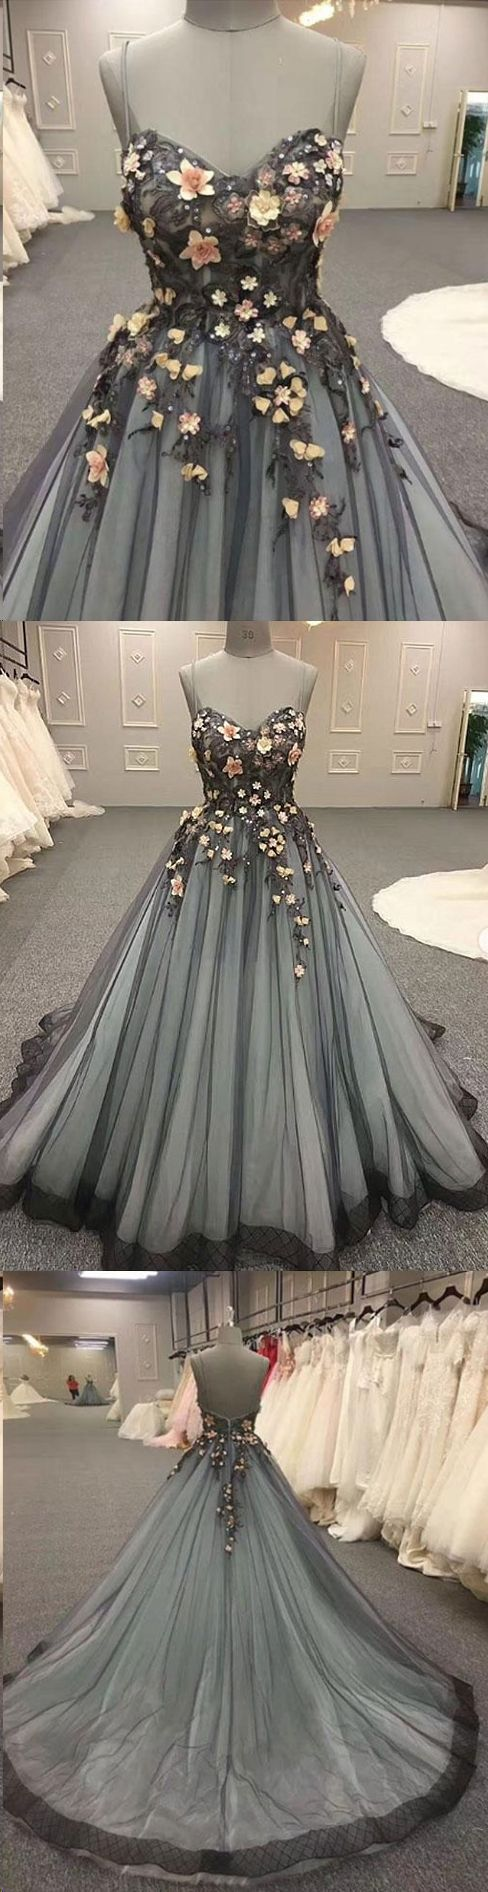 Ball gown prom dresses spaghetti straps lace prom dress long evening